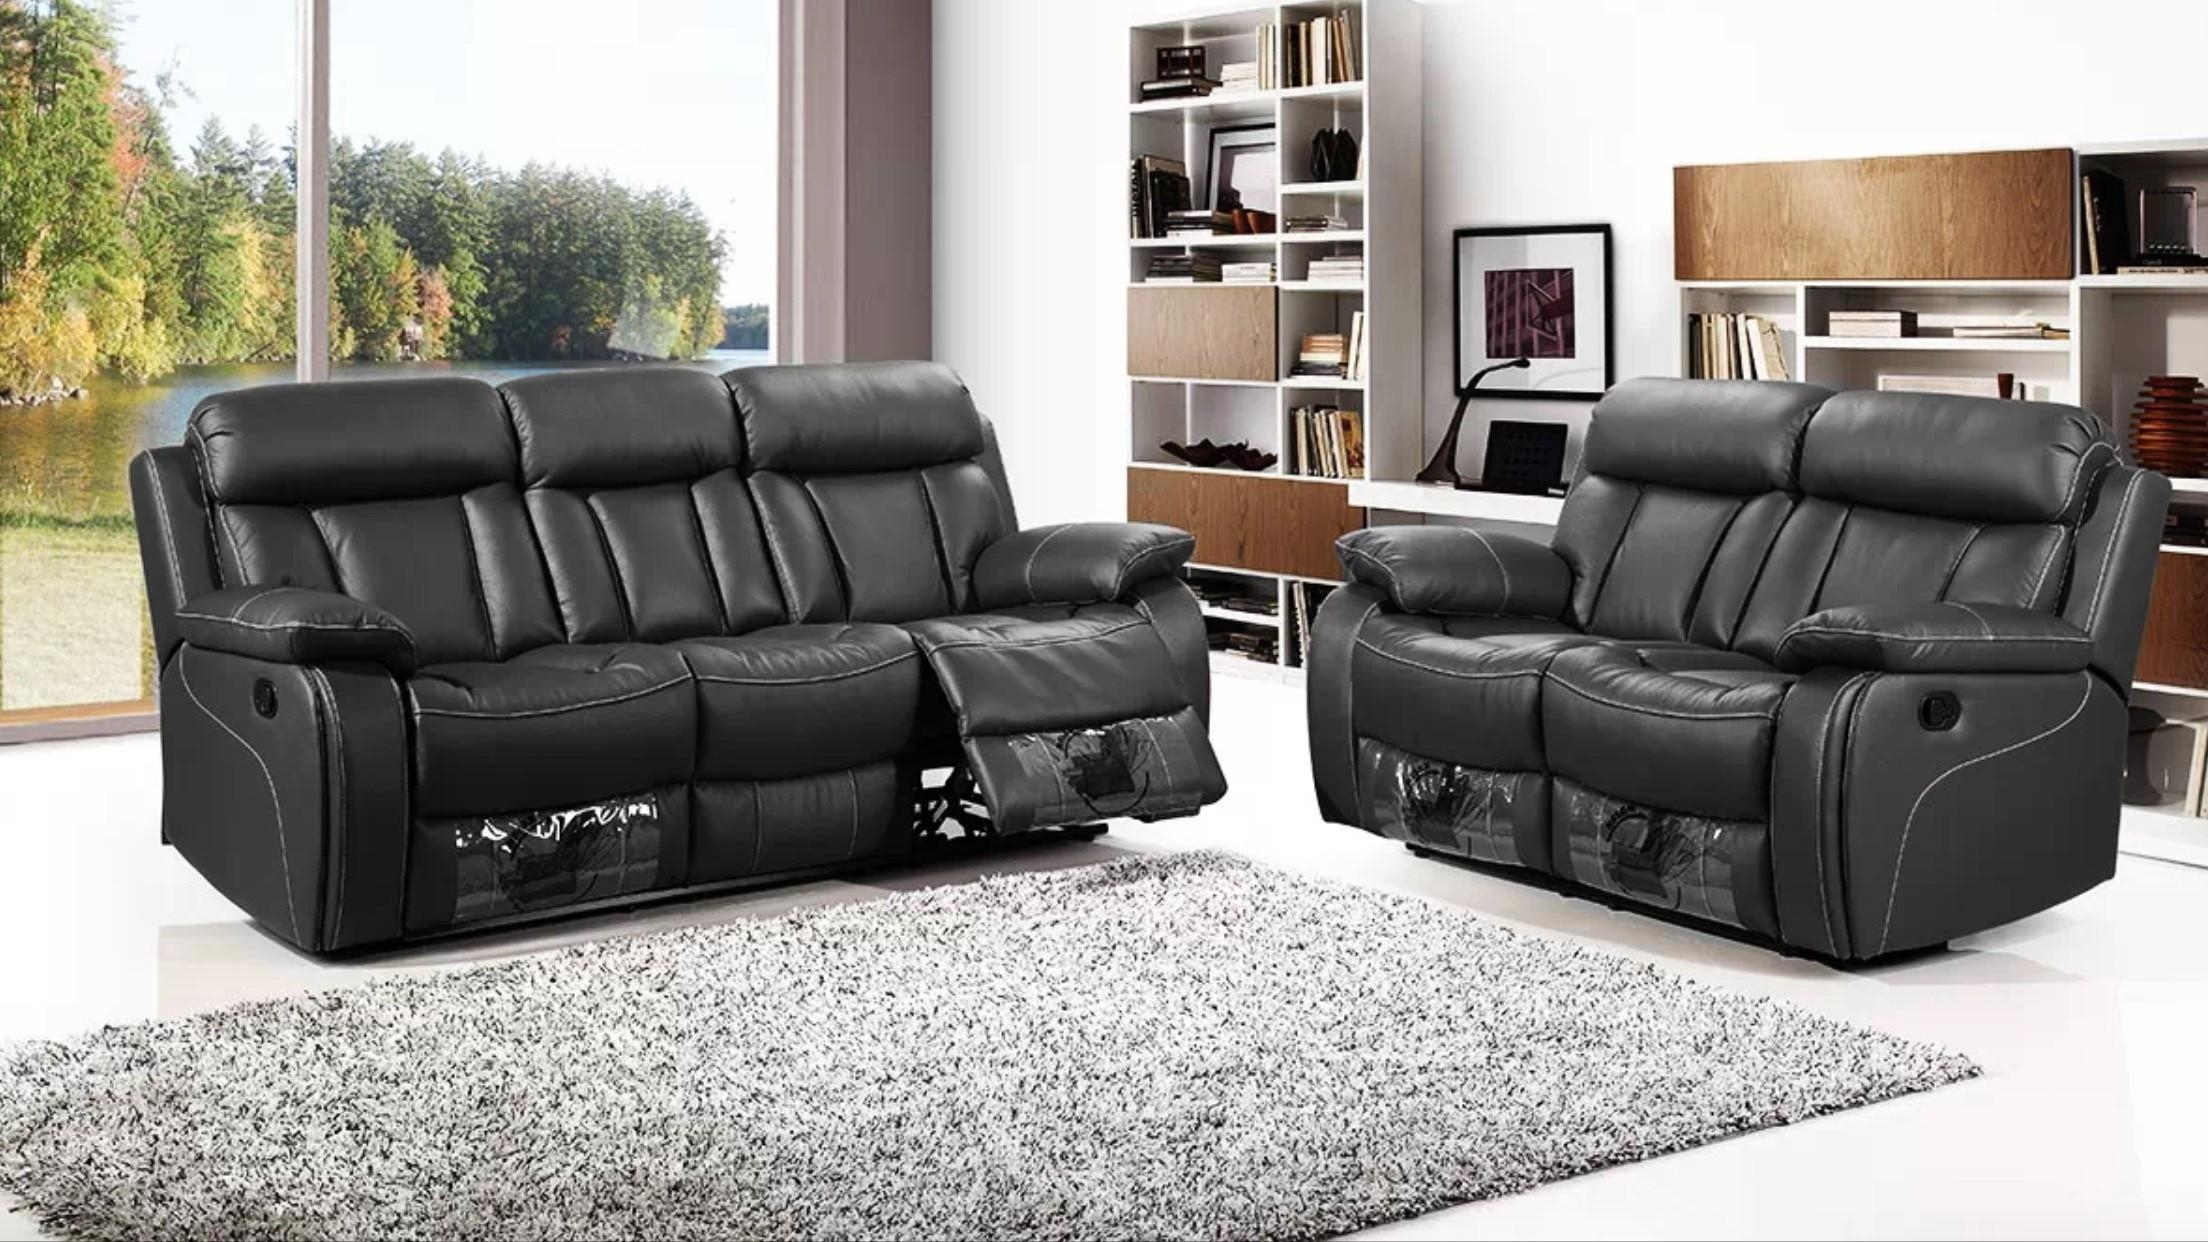 Memphis Black 3 Seater Recliner Sofa And Free Matching 2 Seater Inside 3 Seater Sofas For Sale (View 20 of 21)